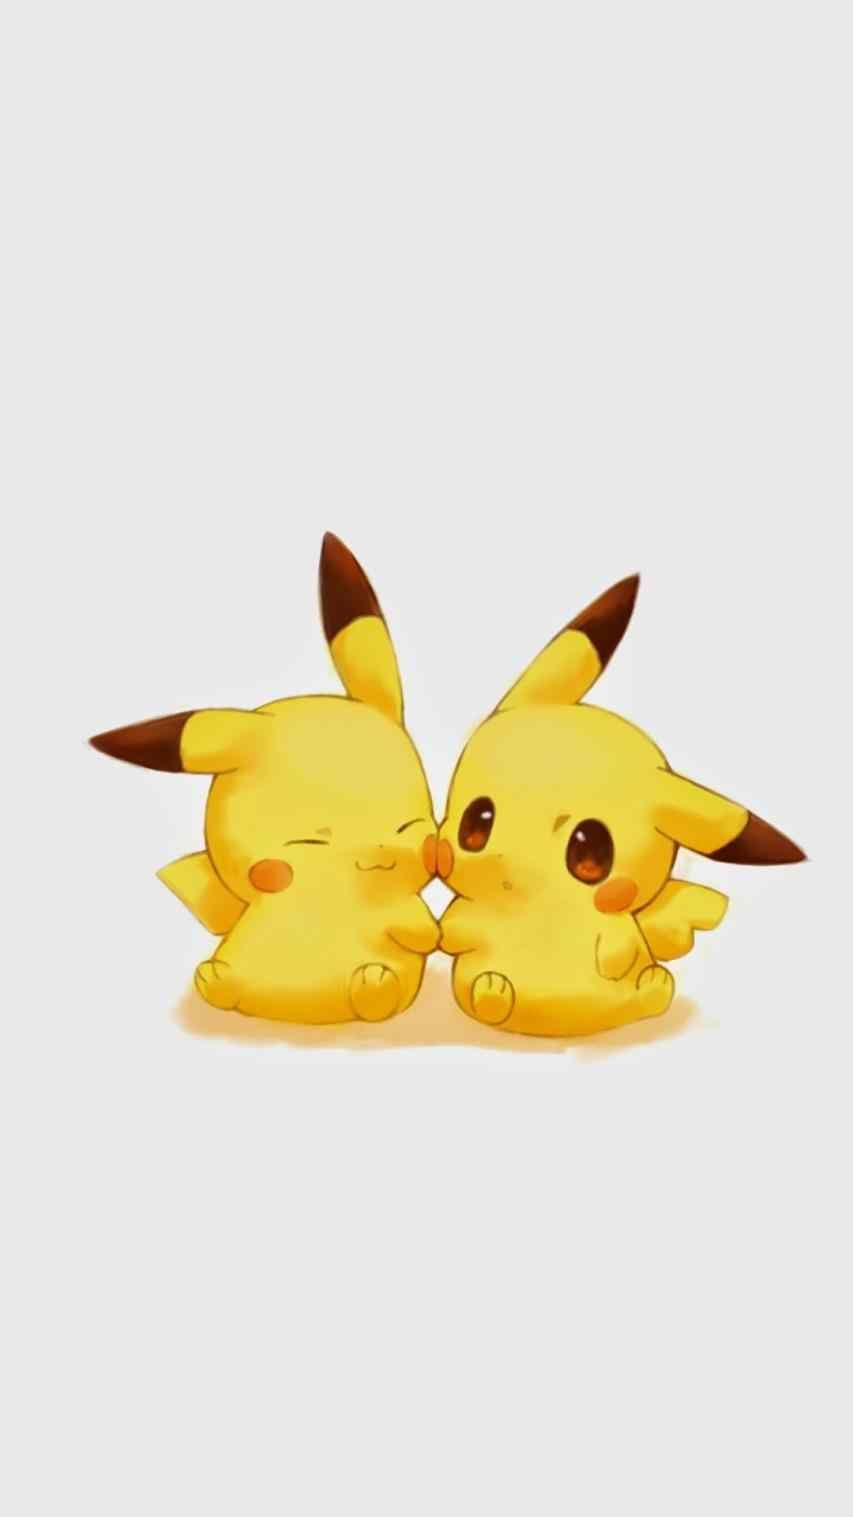 Chibi Pikachu Wallpapers Top Free Chibi Pikachu Backgrounds